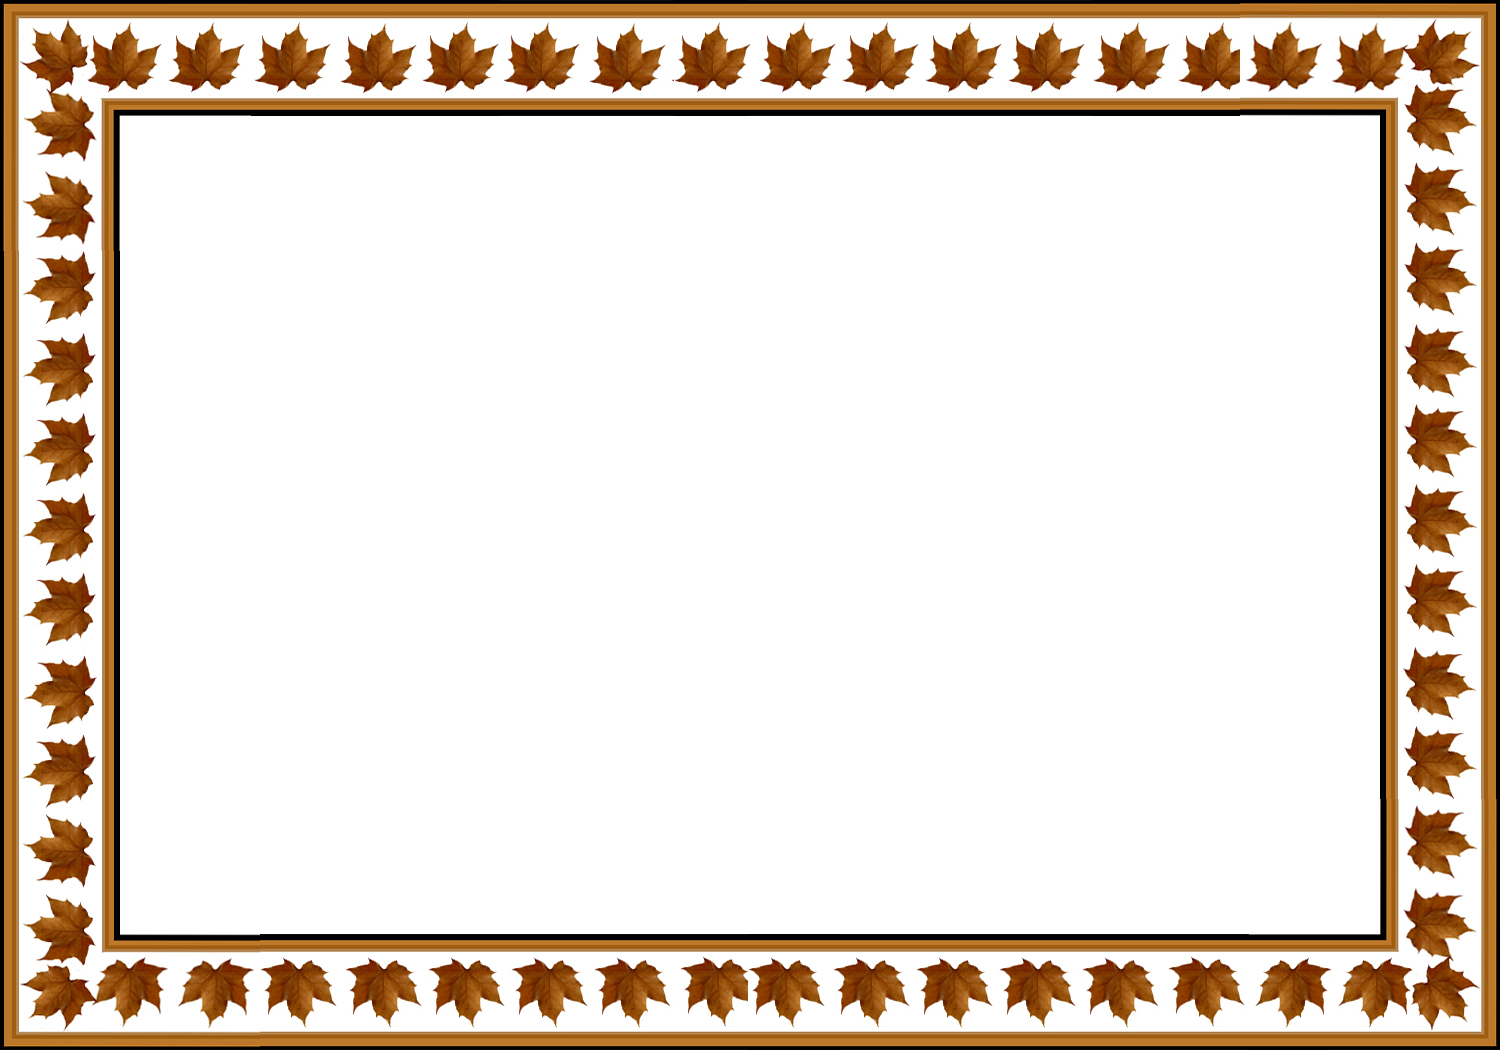 Leaf border template free printable flower border the gallery for gt simple border designs for greeting cards leaf border template m4hsunfo